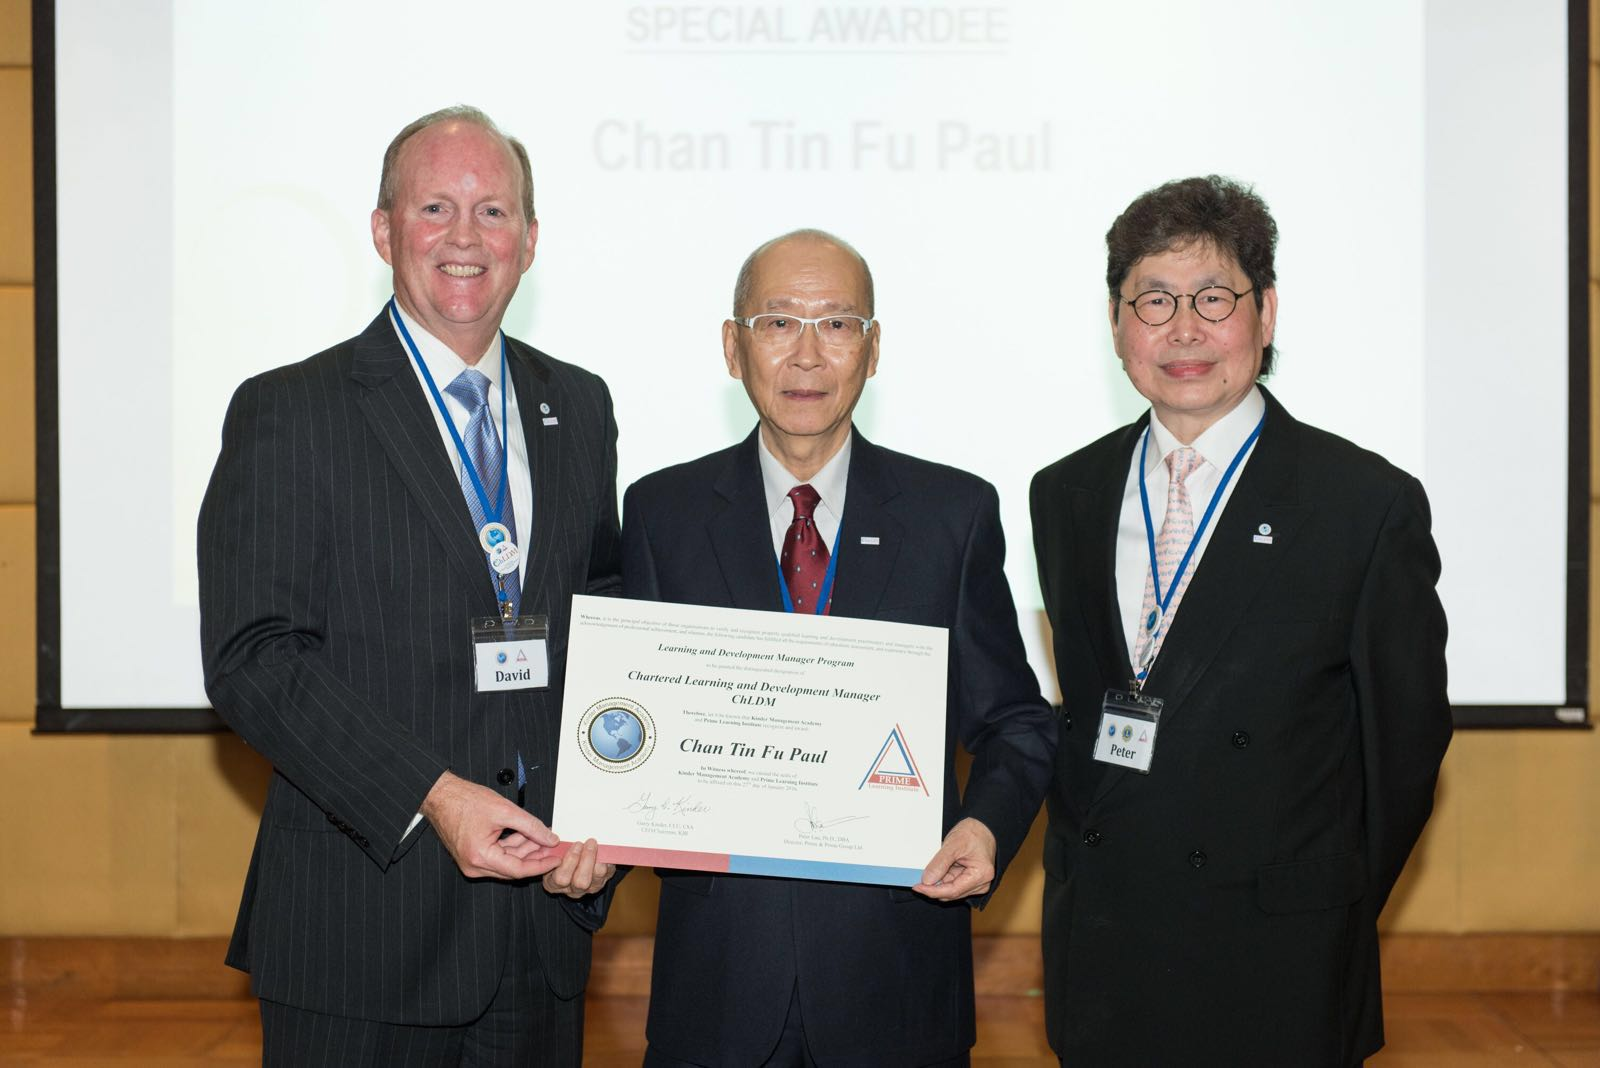 President David Smith and Dr. Peter Lau presenting the ChLDM certificate to Mr. Paul Chan